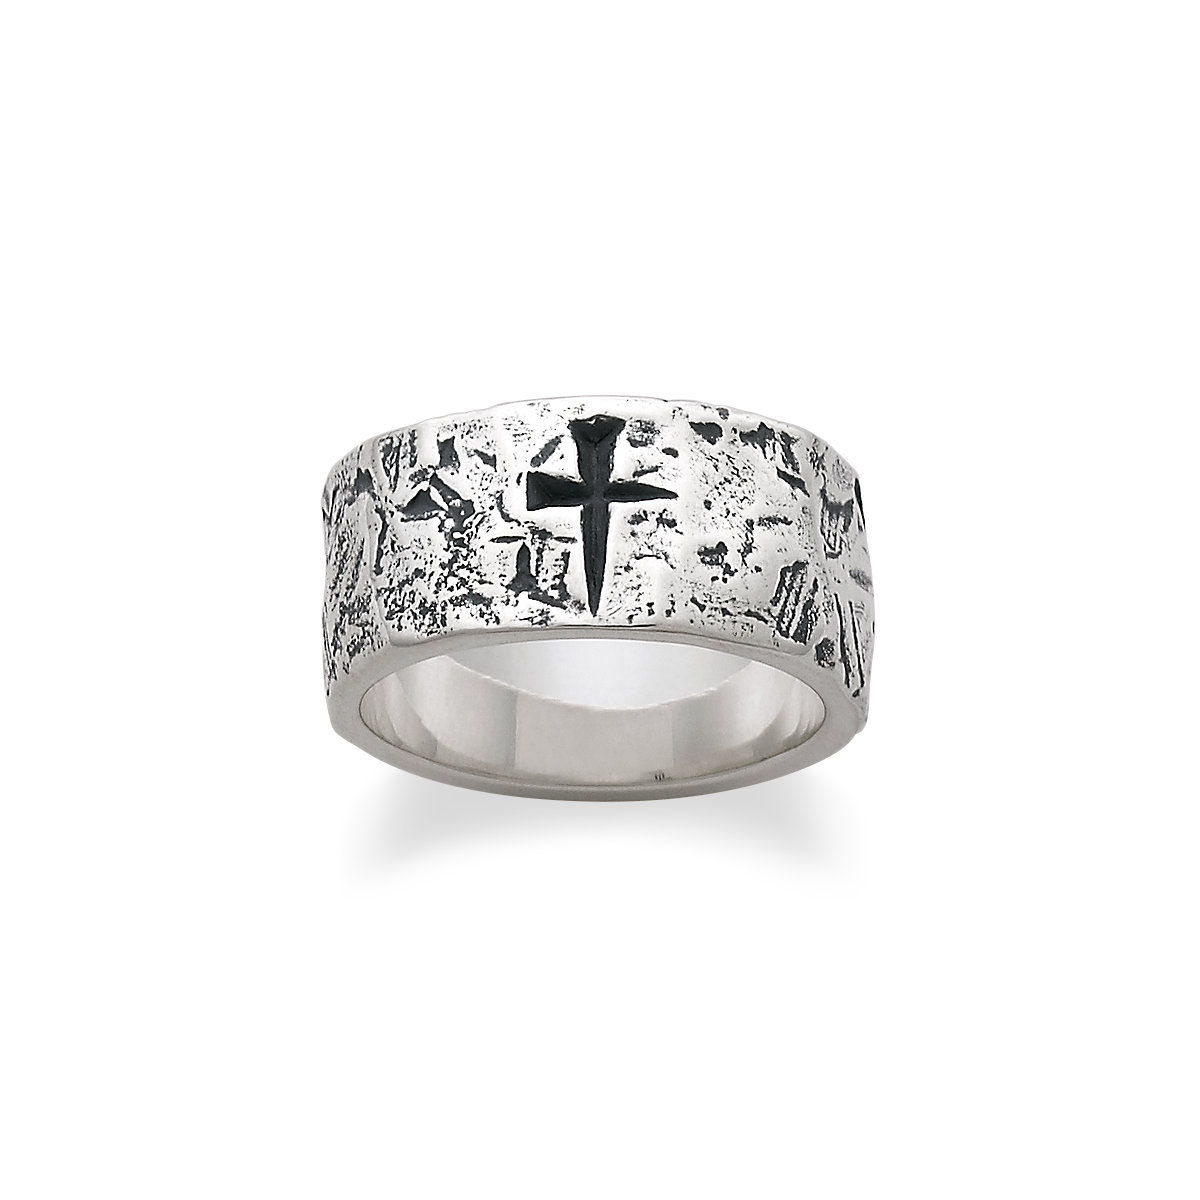 Crossed Wedding Bands.Religious Rings Cross Heart Christian More James Avery